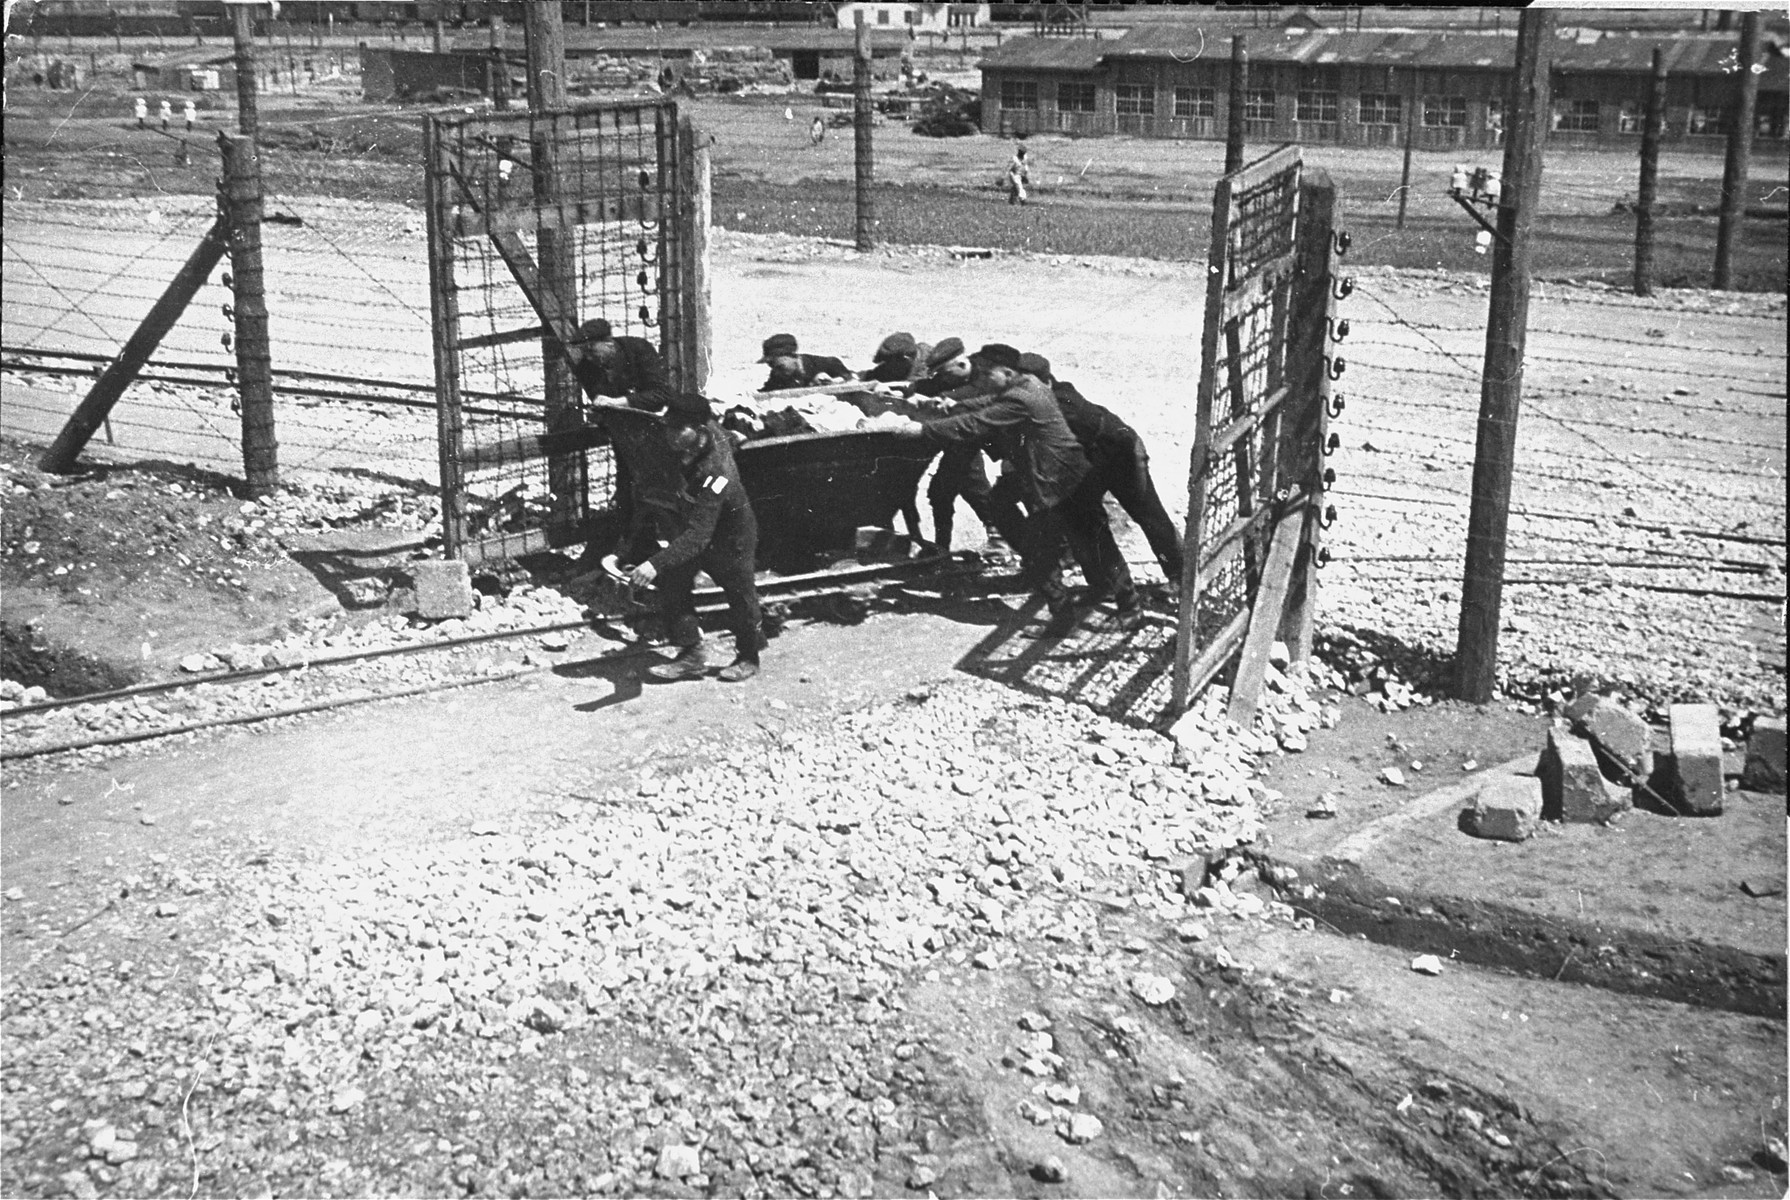 Jewish prisoners in Plaszow at forced labor.